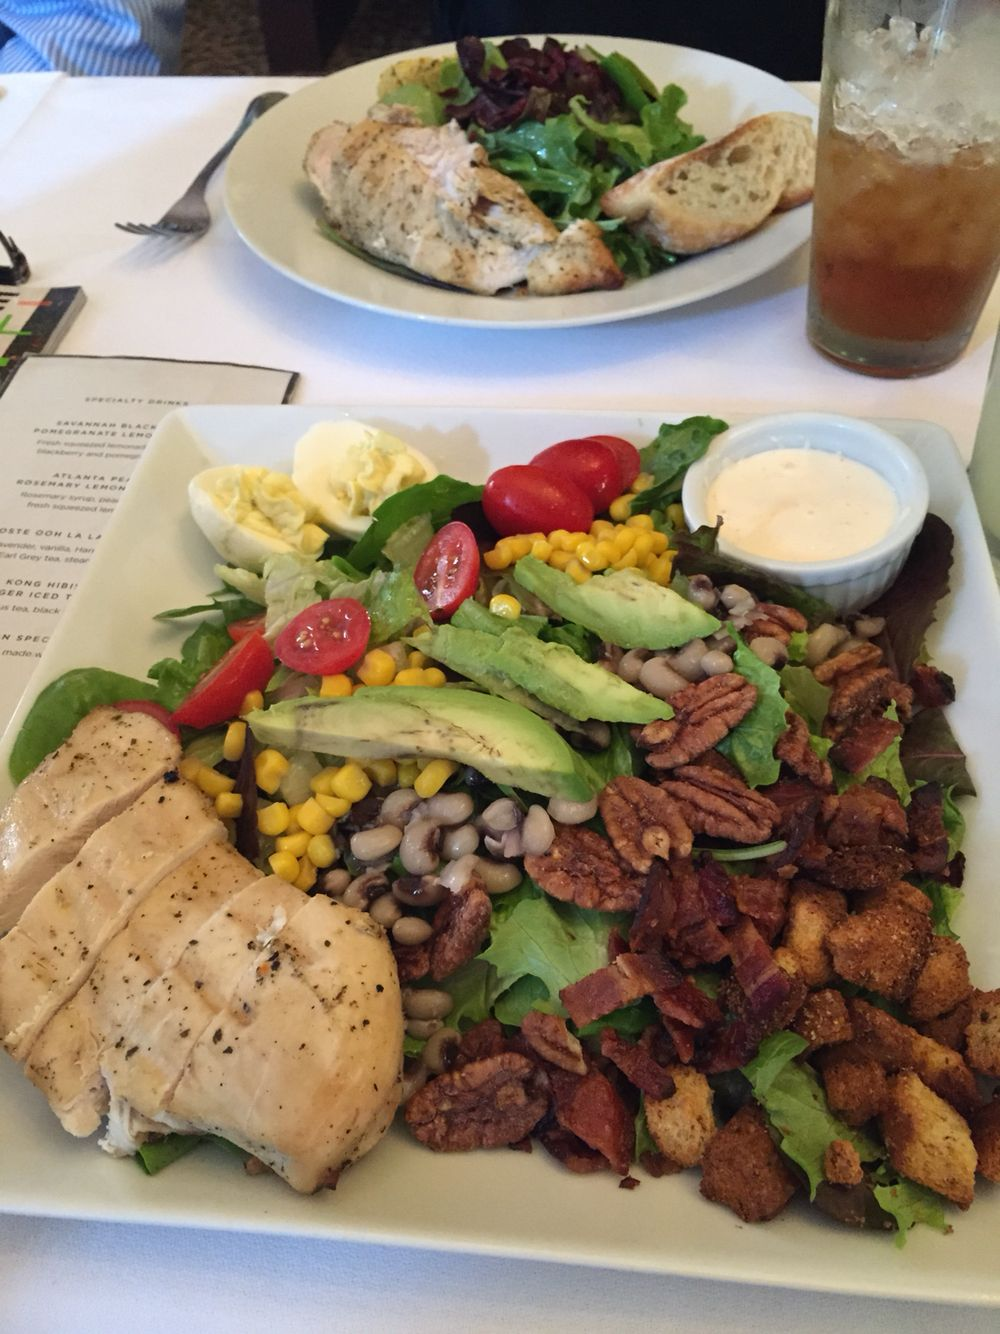 Gryphon Cafe In Downtown Savannah Is Perfect For A Lunch Date With Friends Or Coworkers